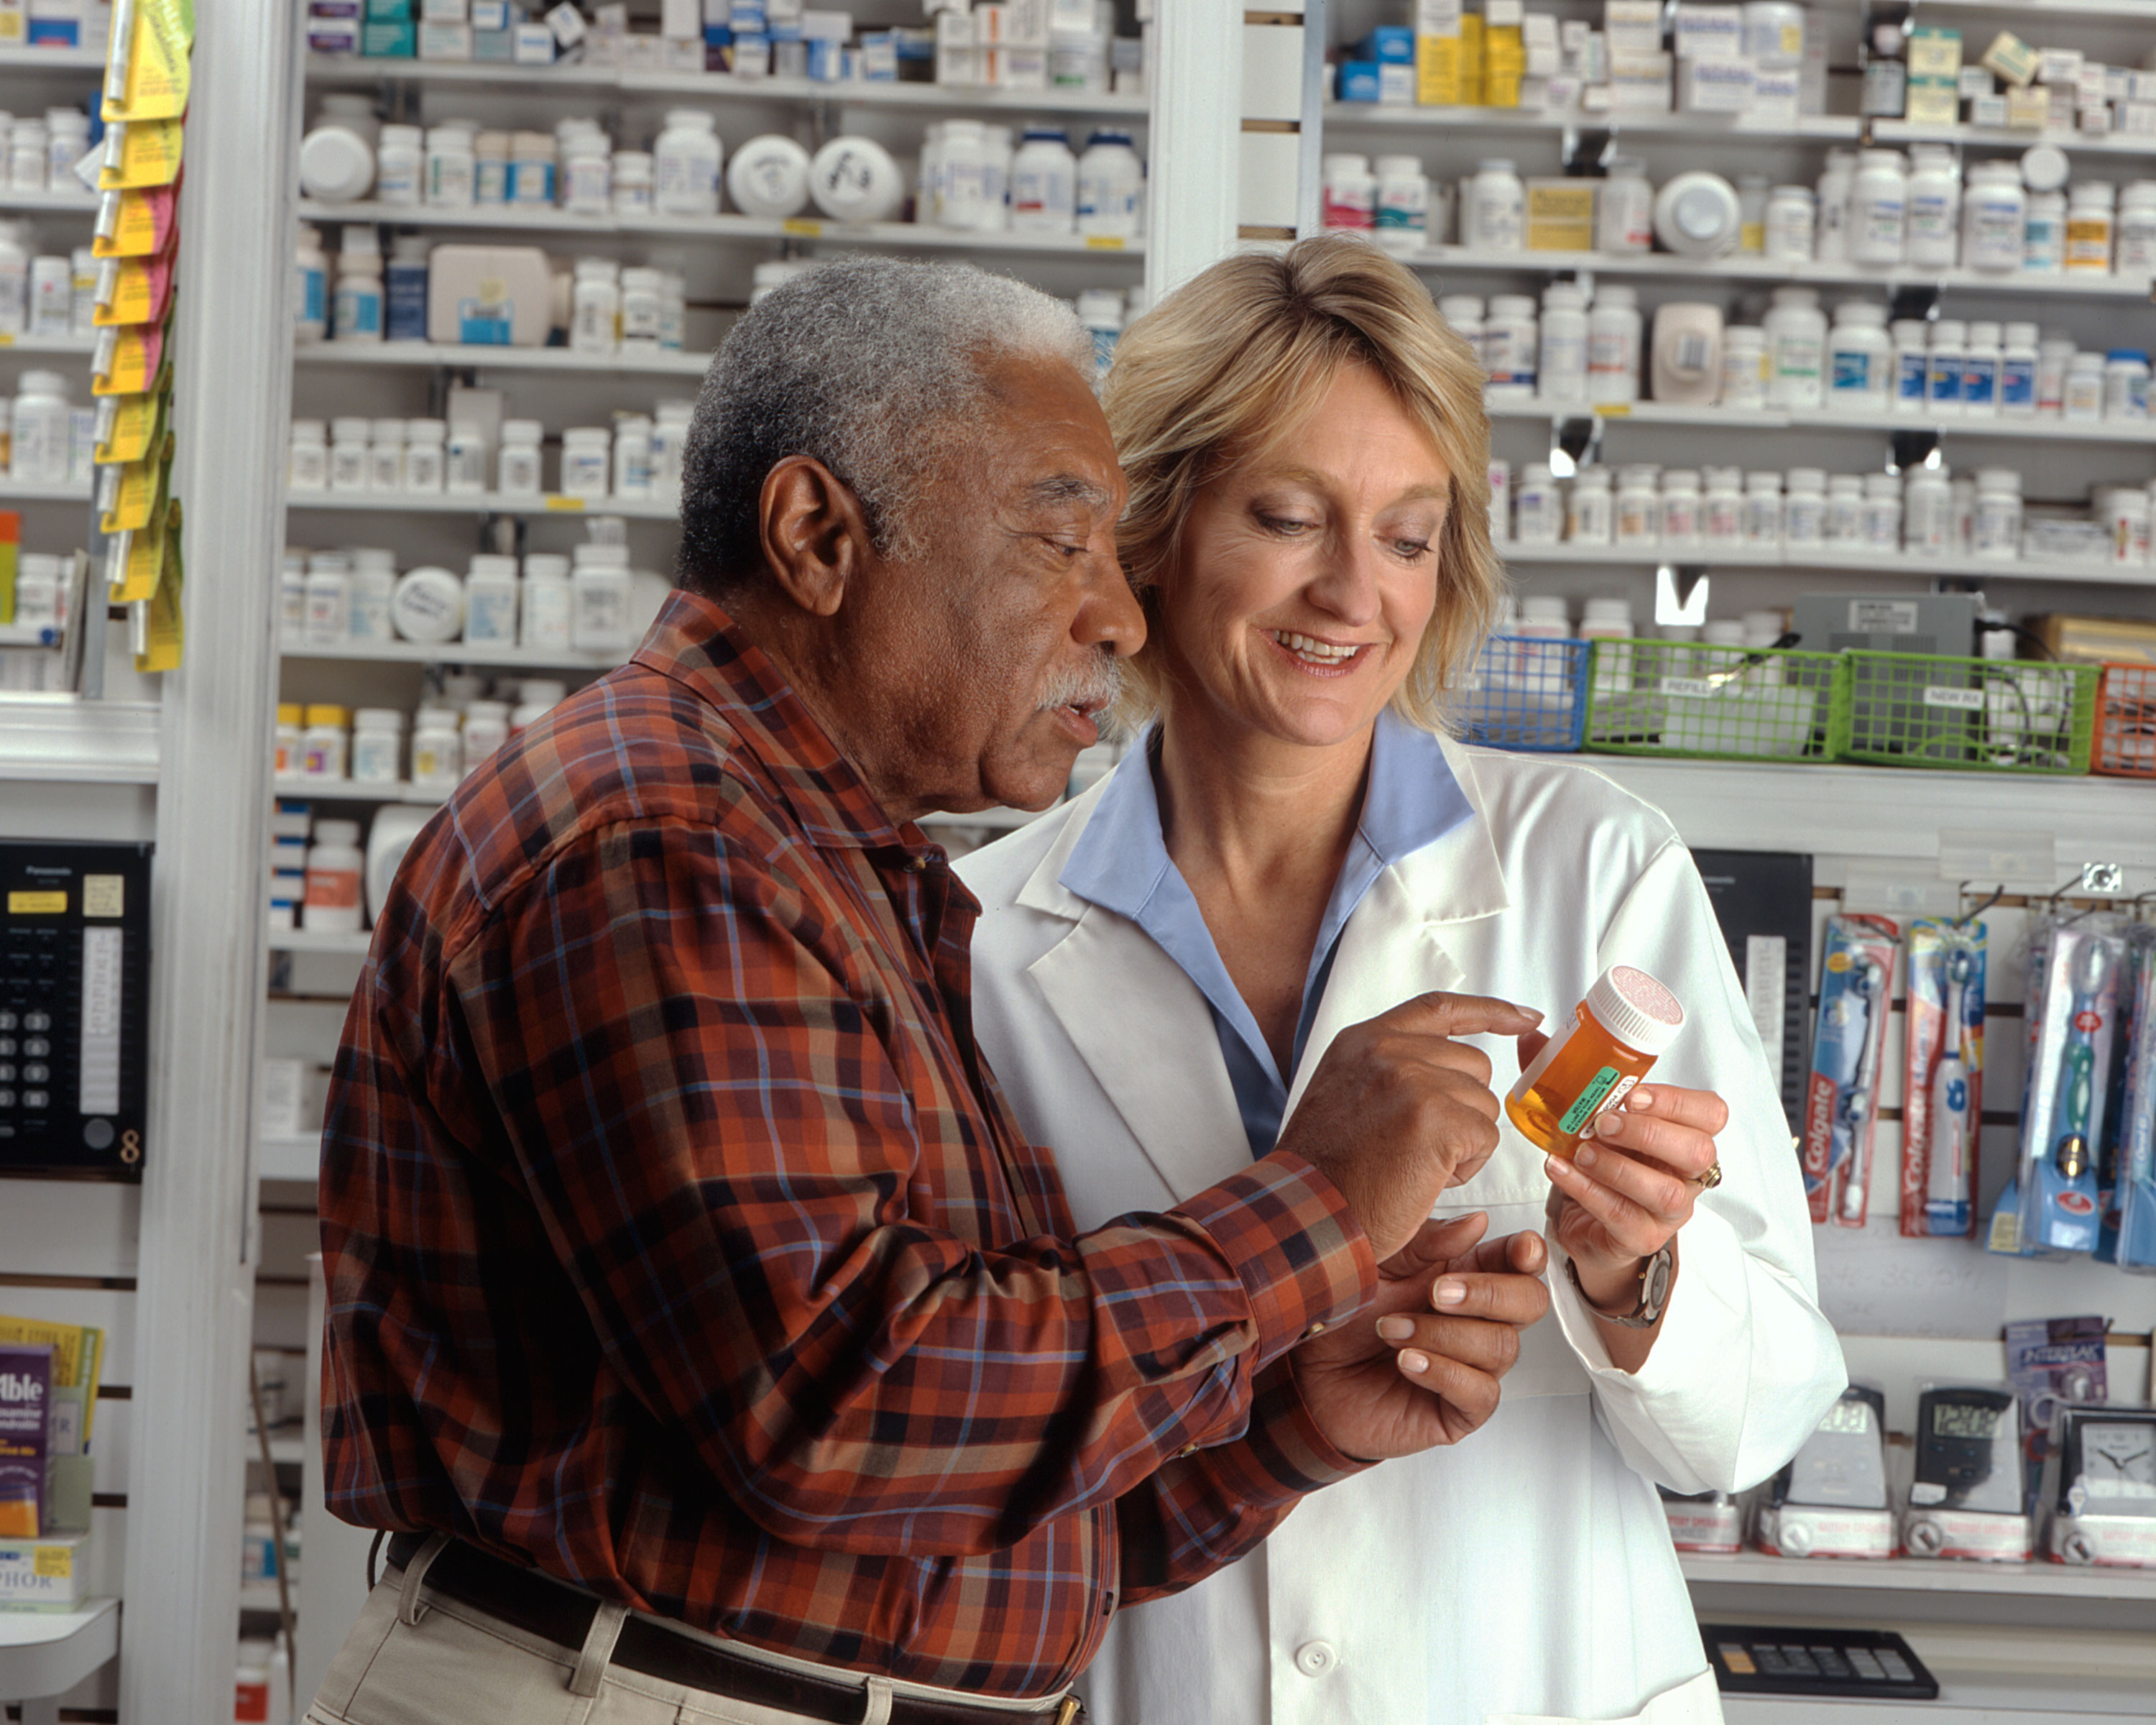 A doctor looks over a prescription bottle with her patient